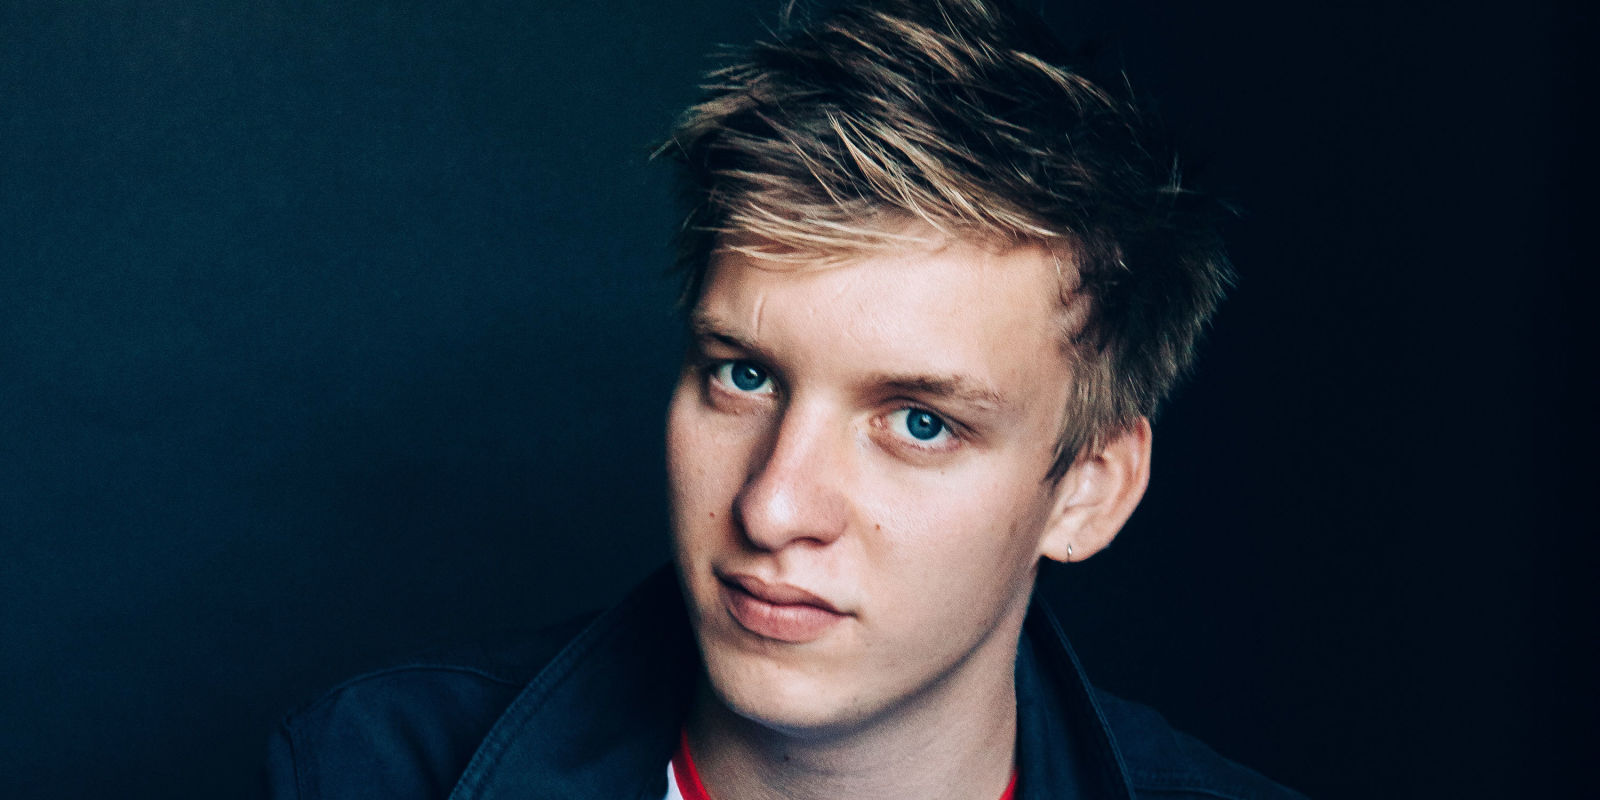 George Ezra earned a 0.2 million dollar salary - leaving the net worth at 1.75 million in 2018